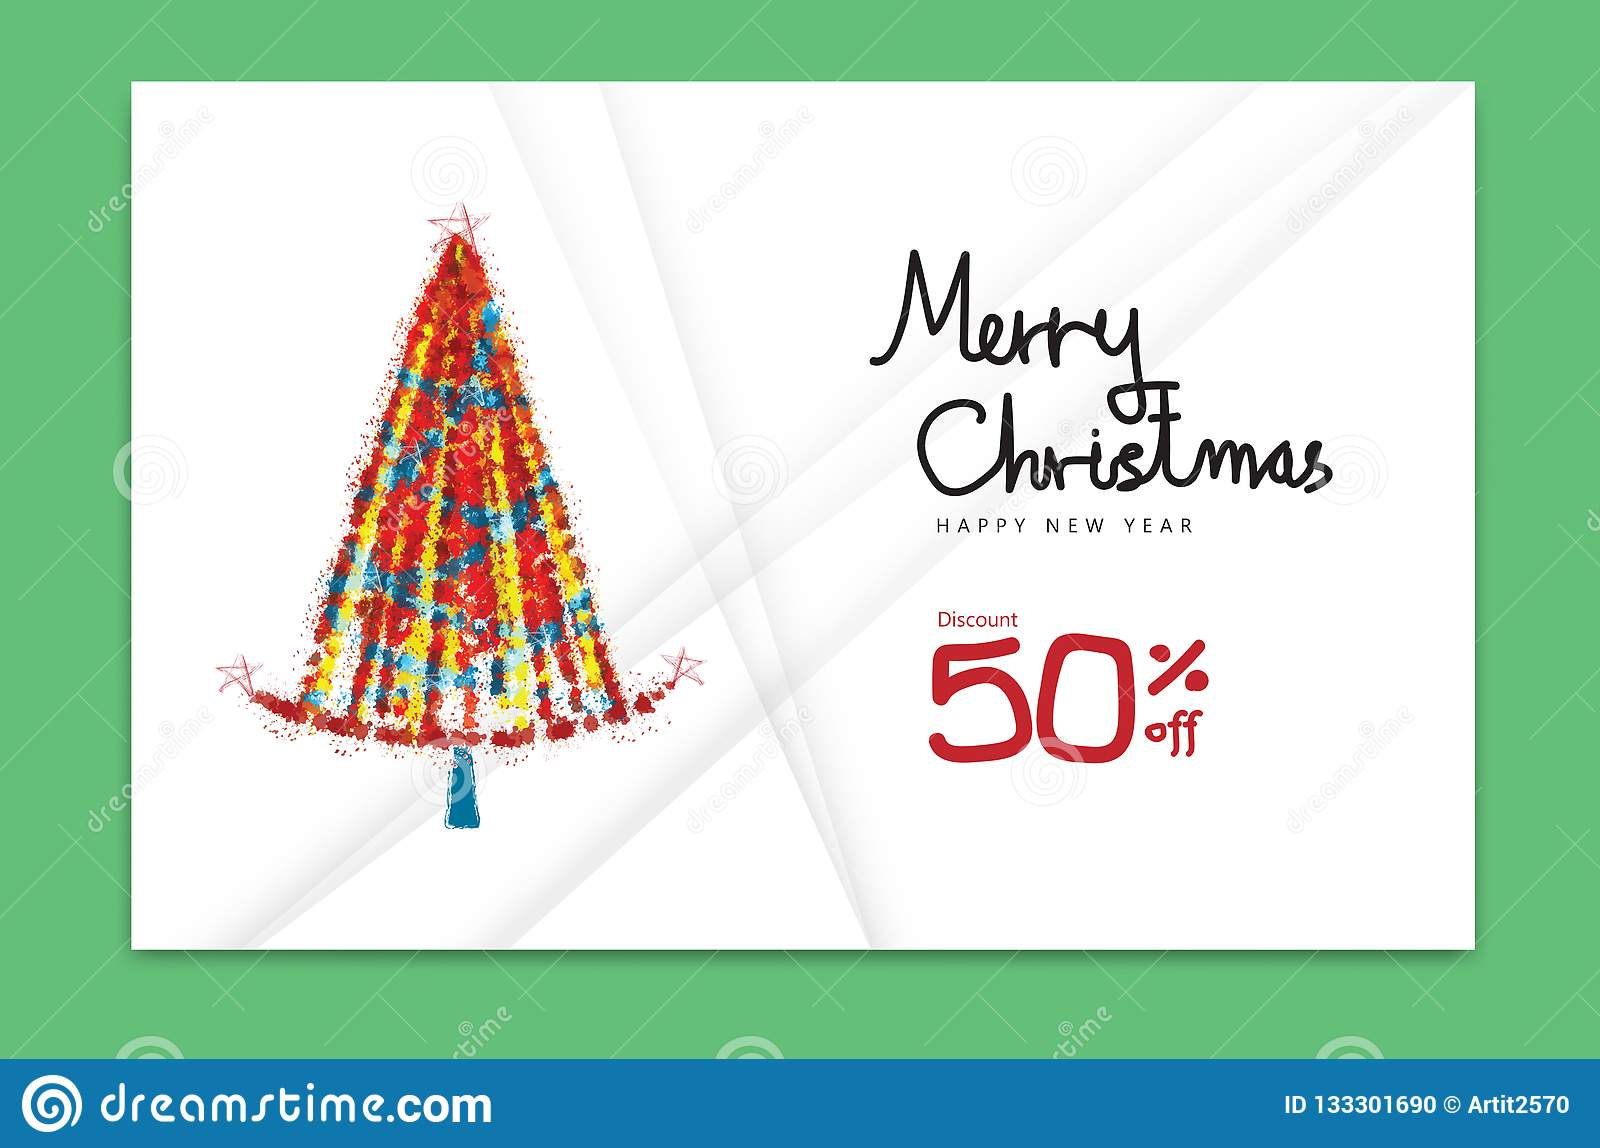 Merry Christmas Card 2019 Happy New Year Banner Christmas Tree